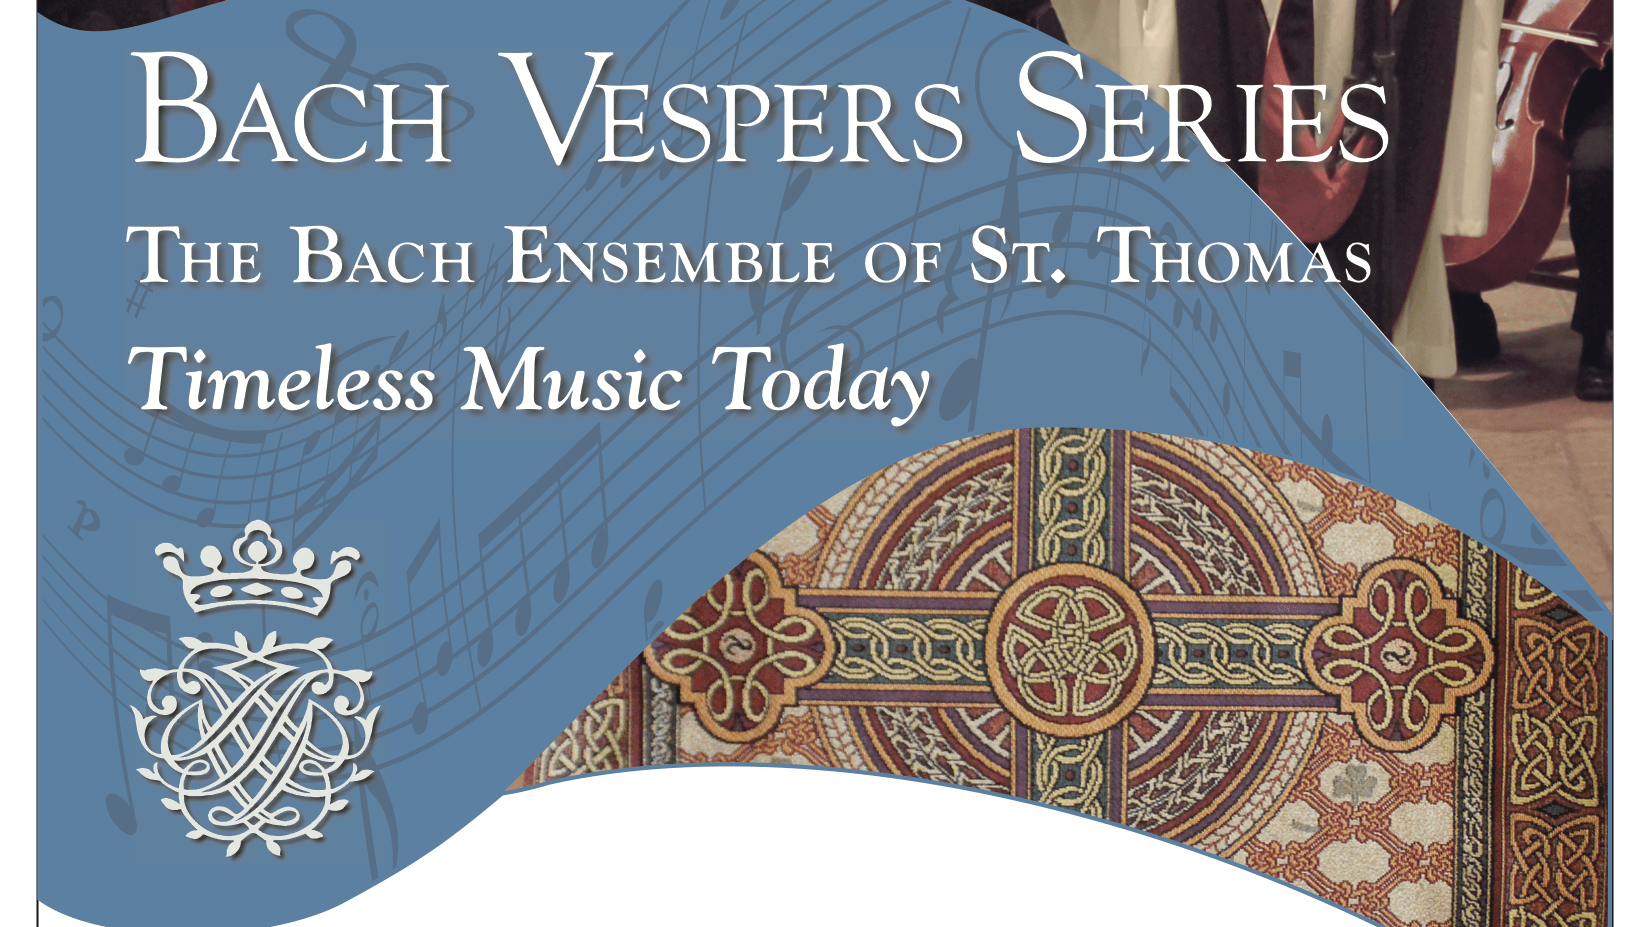 bach vespers5 2711x17 e1526408691110png httpsstthomasepiscopalorg20180729sermons at st thomas the